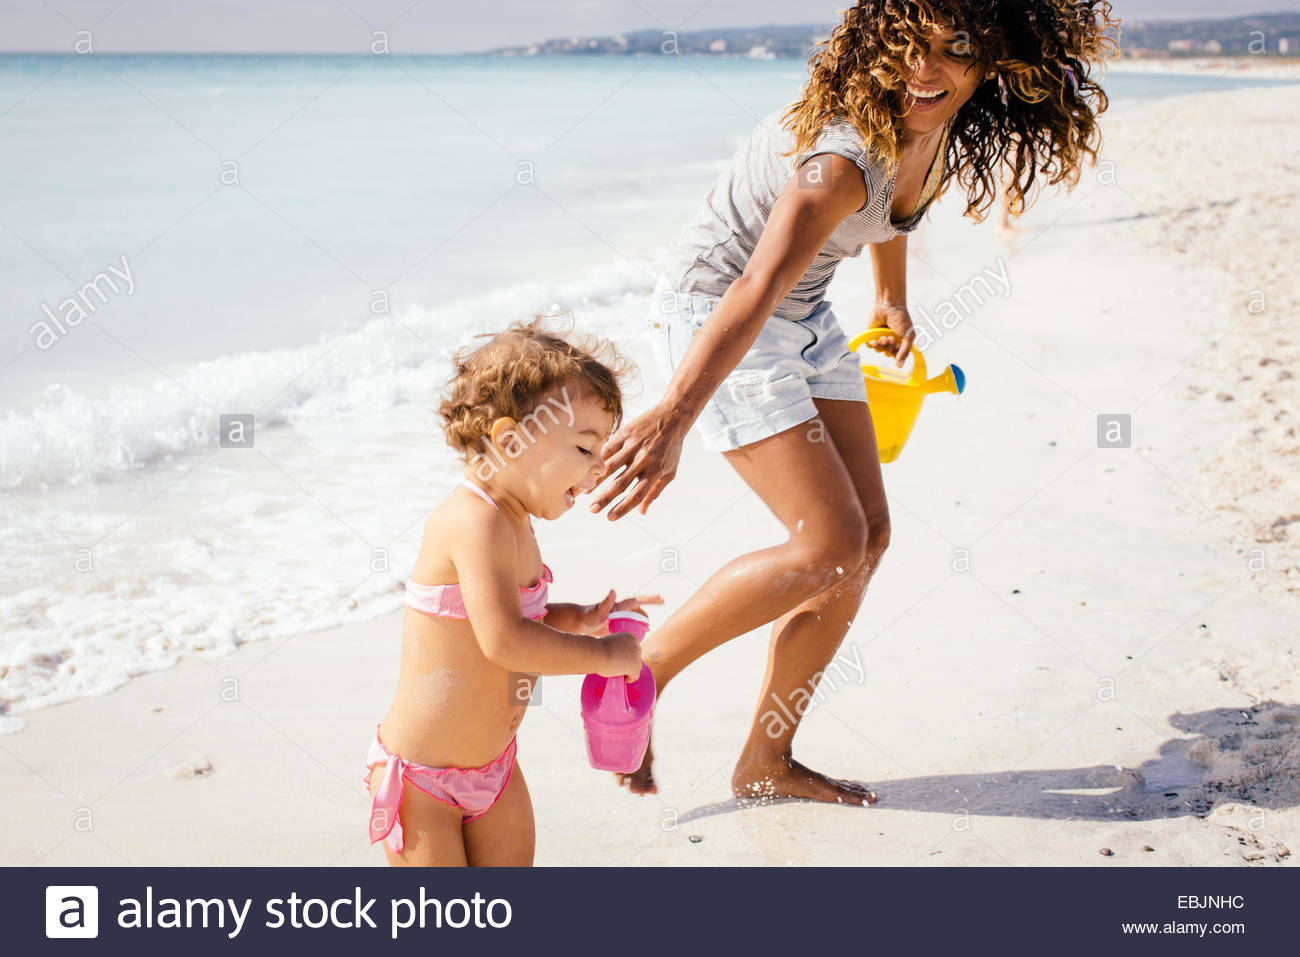 Mother and toddler daughter with toy watering cans on beach, Tuscany, Italy - Stock Image